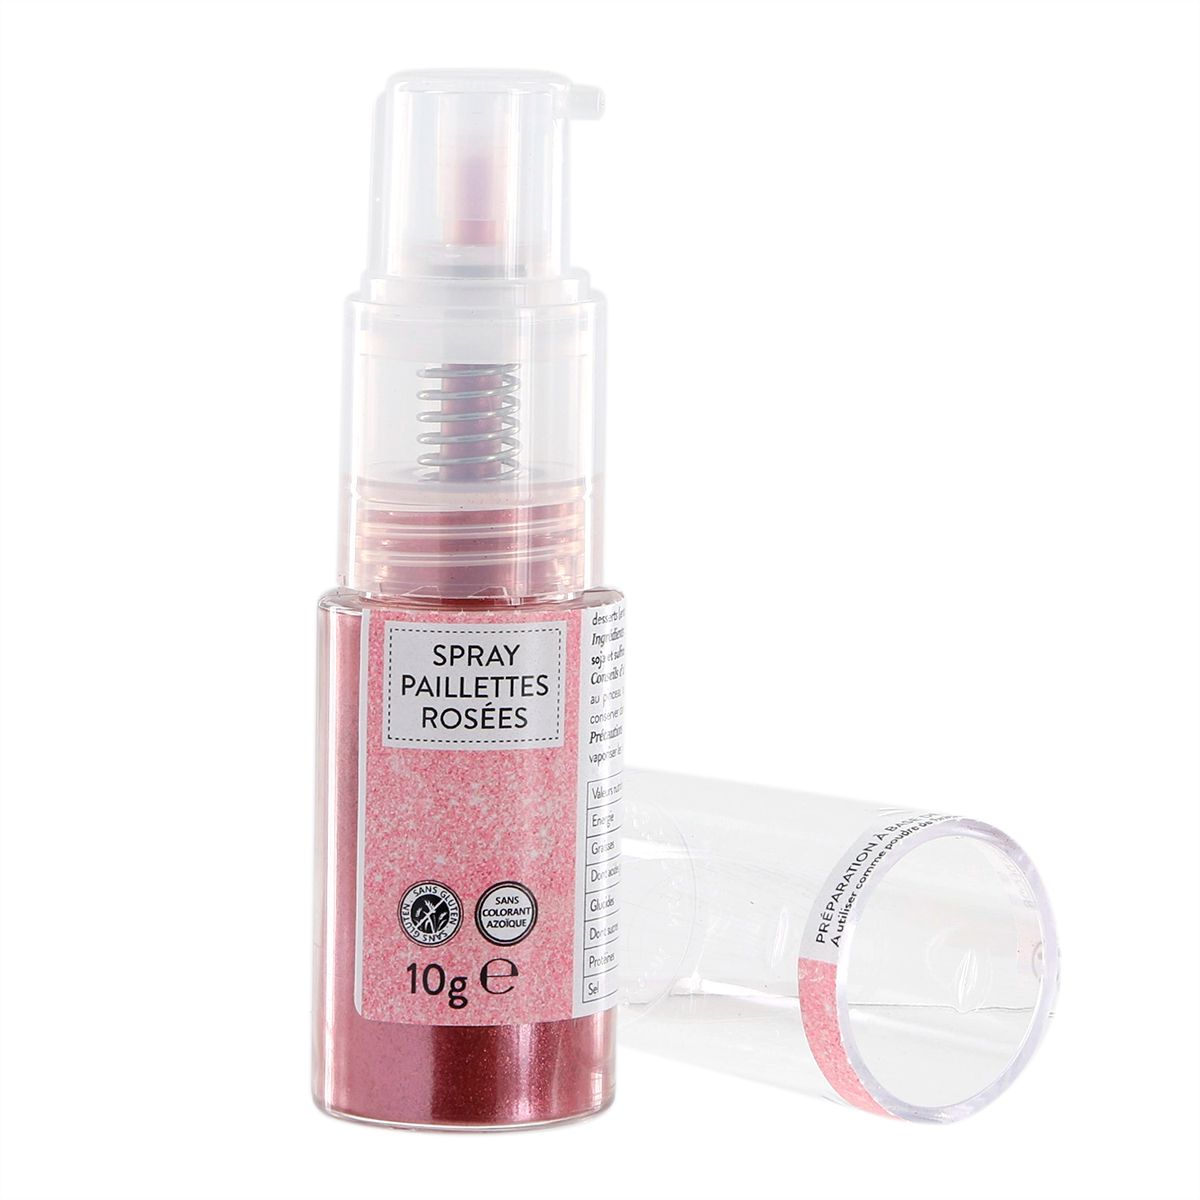 Spray paillettes alimentaires or rose 10 gr